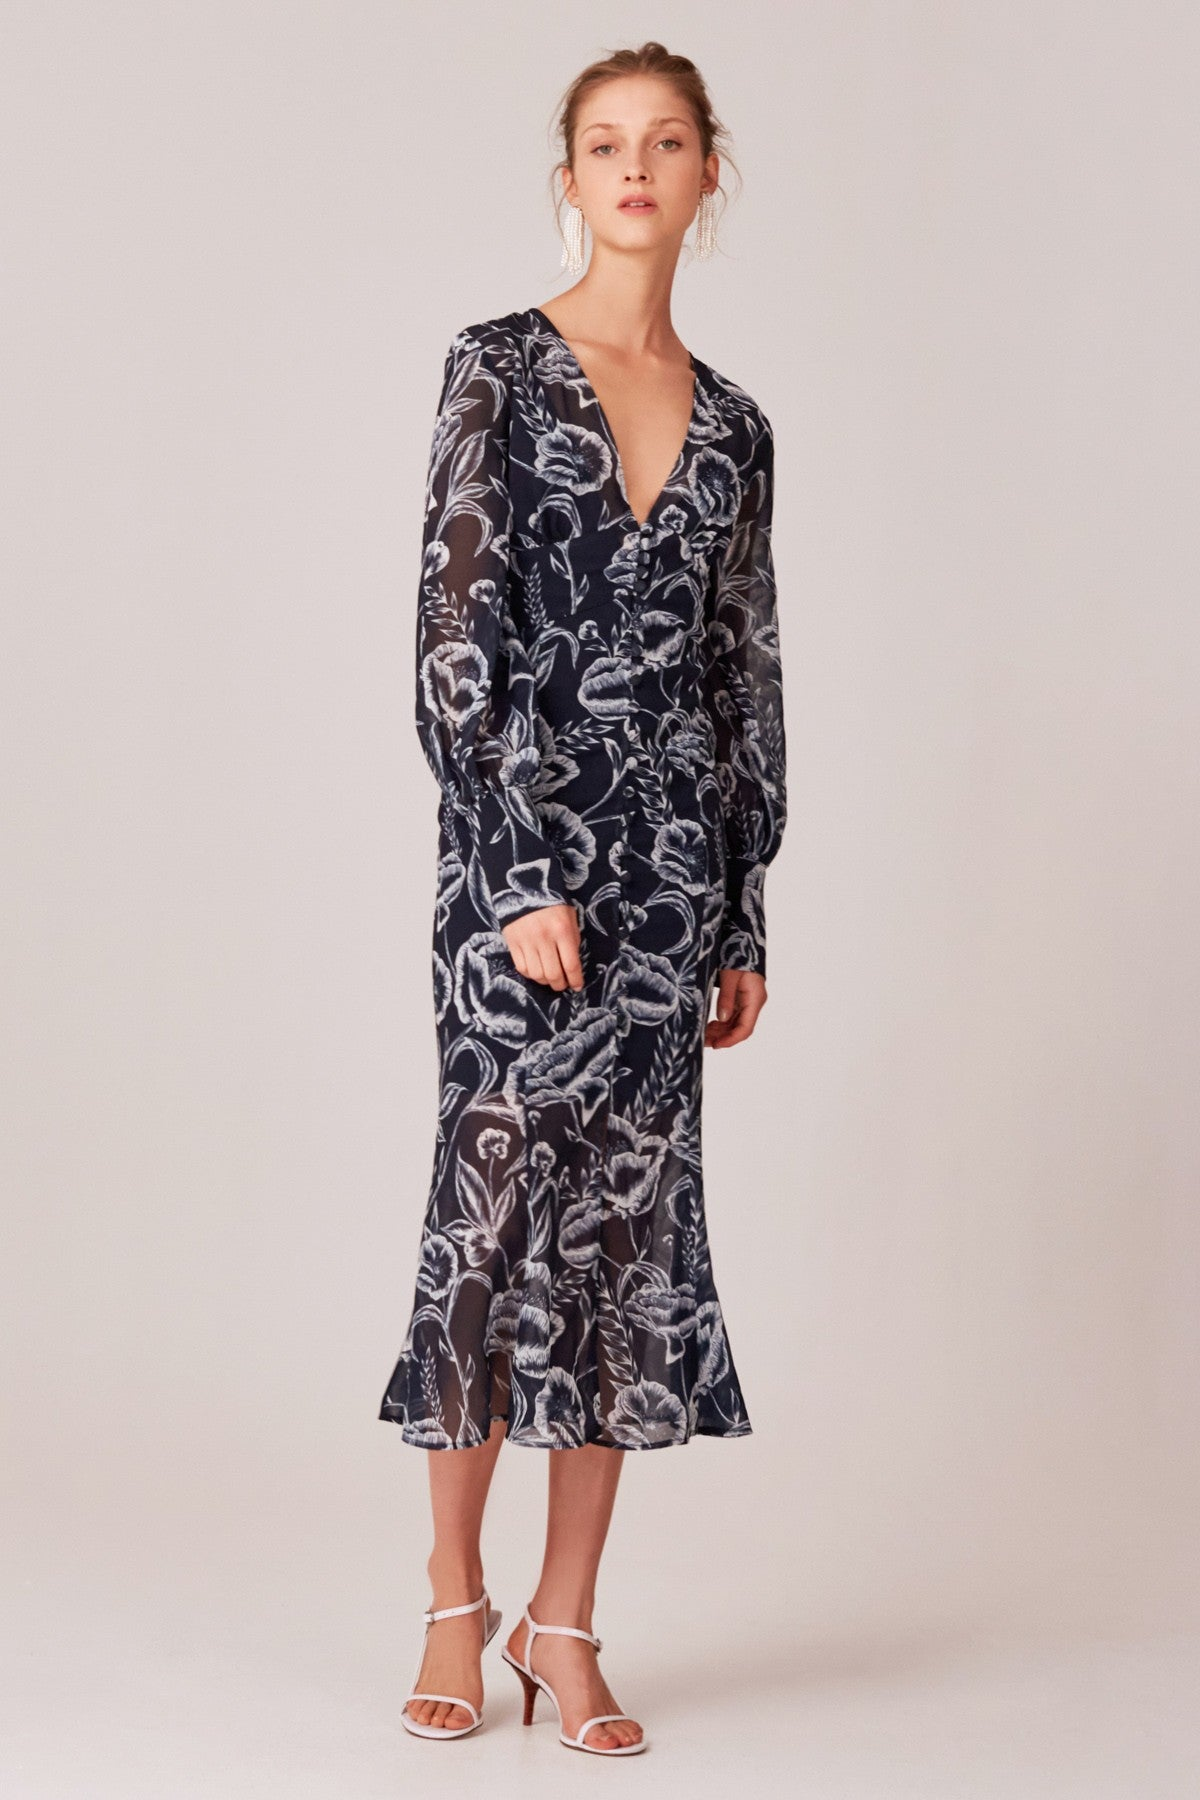 Buy C/MEO COLLECTIVE Discretion Midi Dress now at Smoke and Mirrors Boutique. Shop C/MEO COLLECTIVE Free Shipping Australia. Buy C/MEO COLLECTIVE ZipPay. Buy C/MEO COLLECTIVE AfterPay.